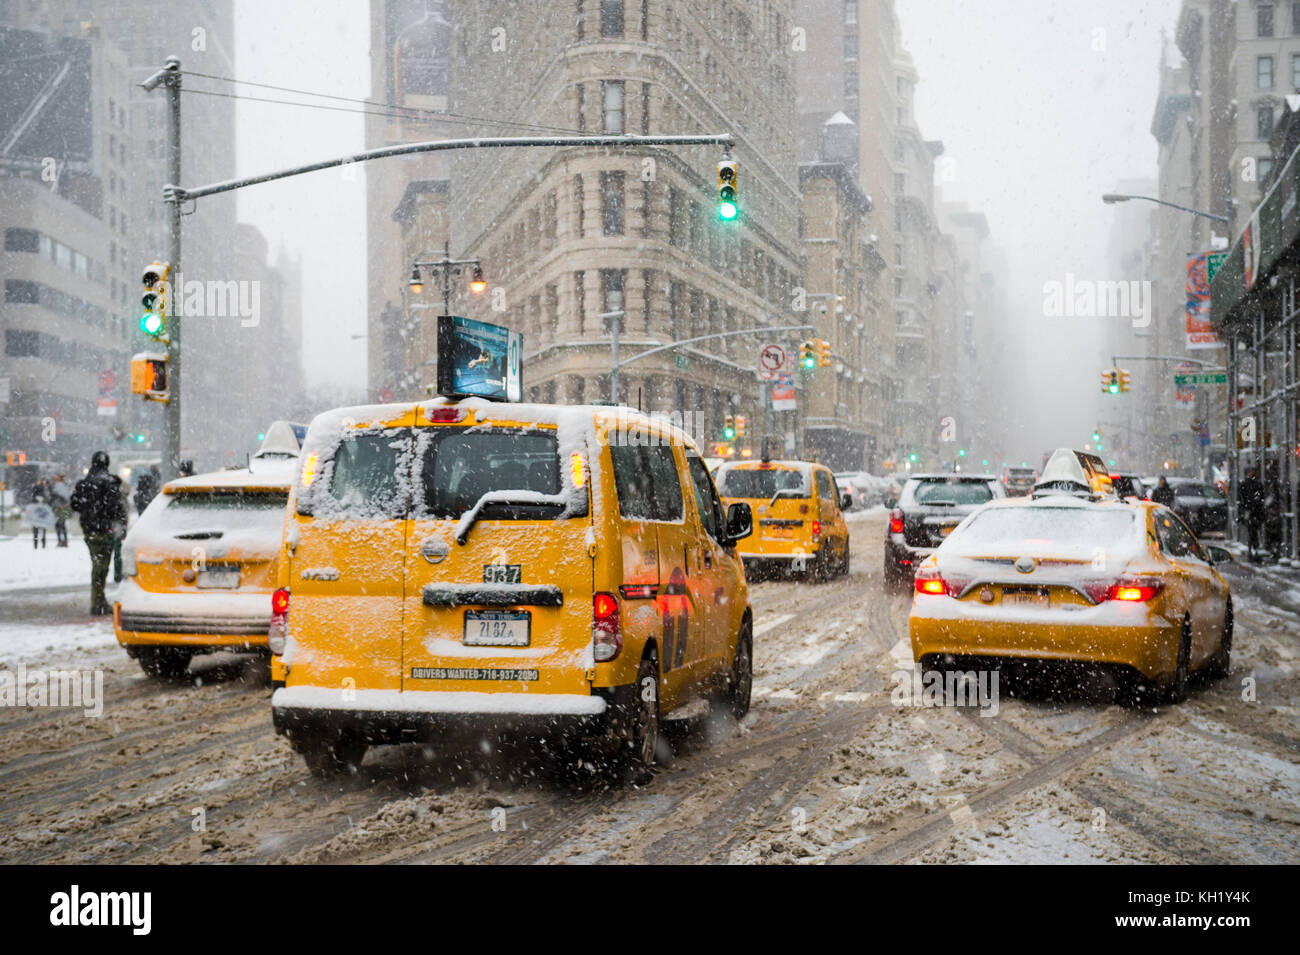 NEW YORK CITY - JANUARY 7, 2016: A winter snowstorm brings traffic and pedestrians to a slow crawl at the Flatiron - Stock Image